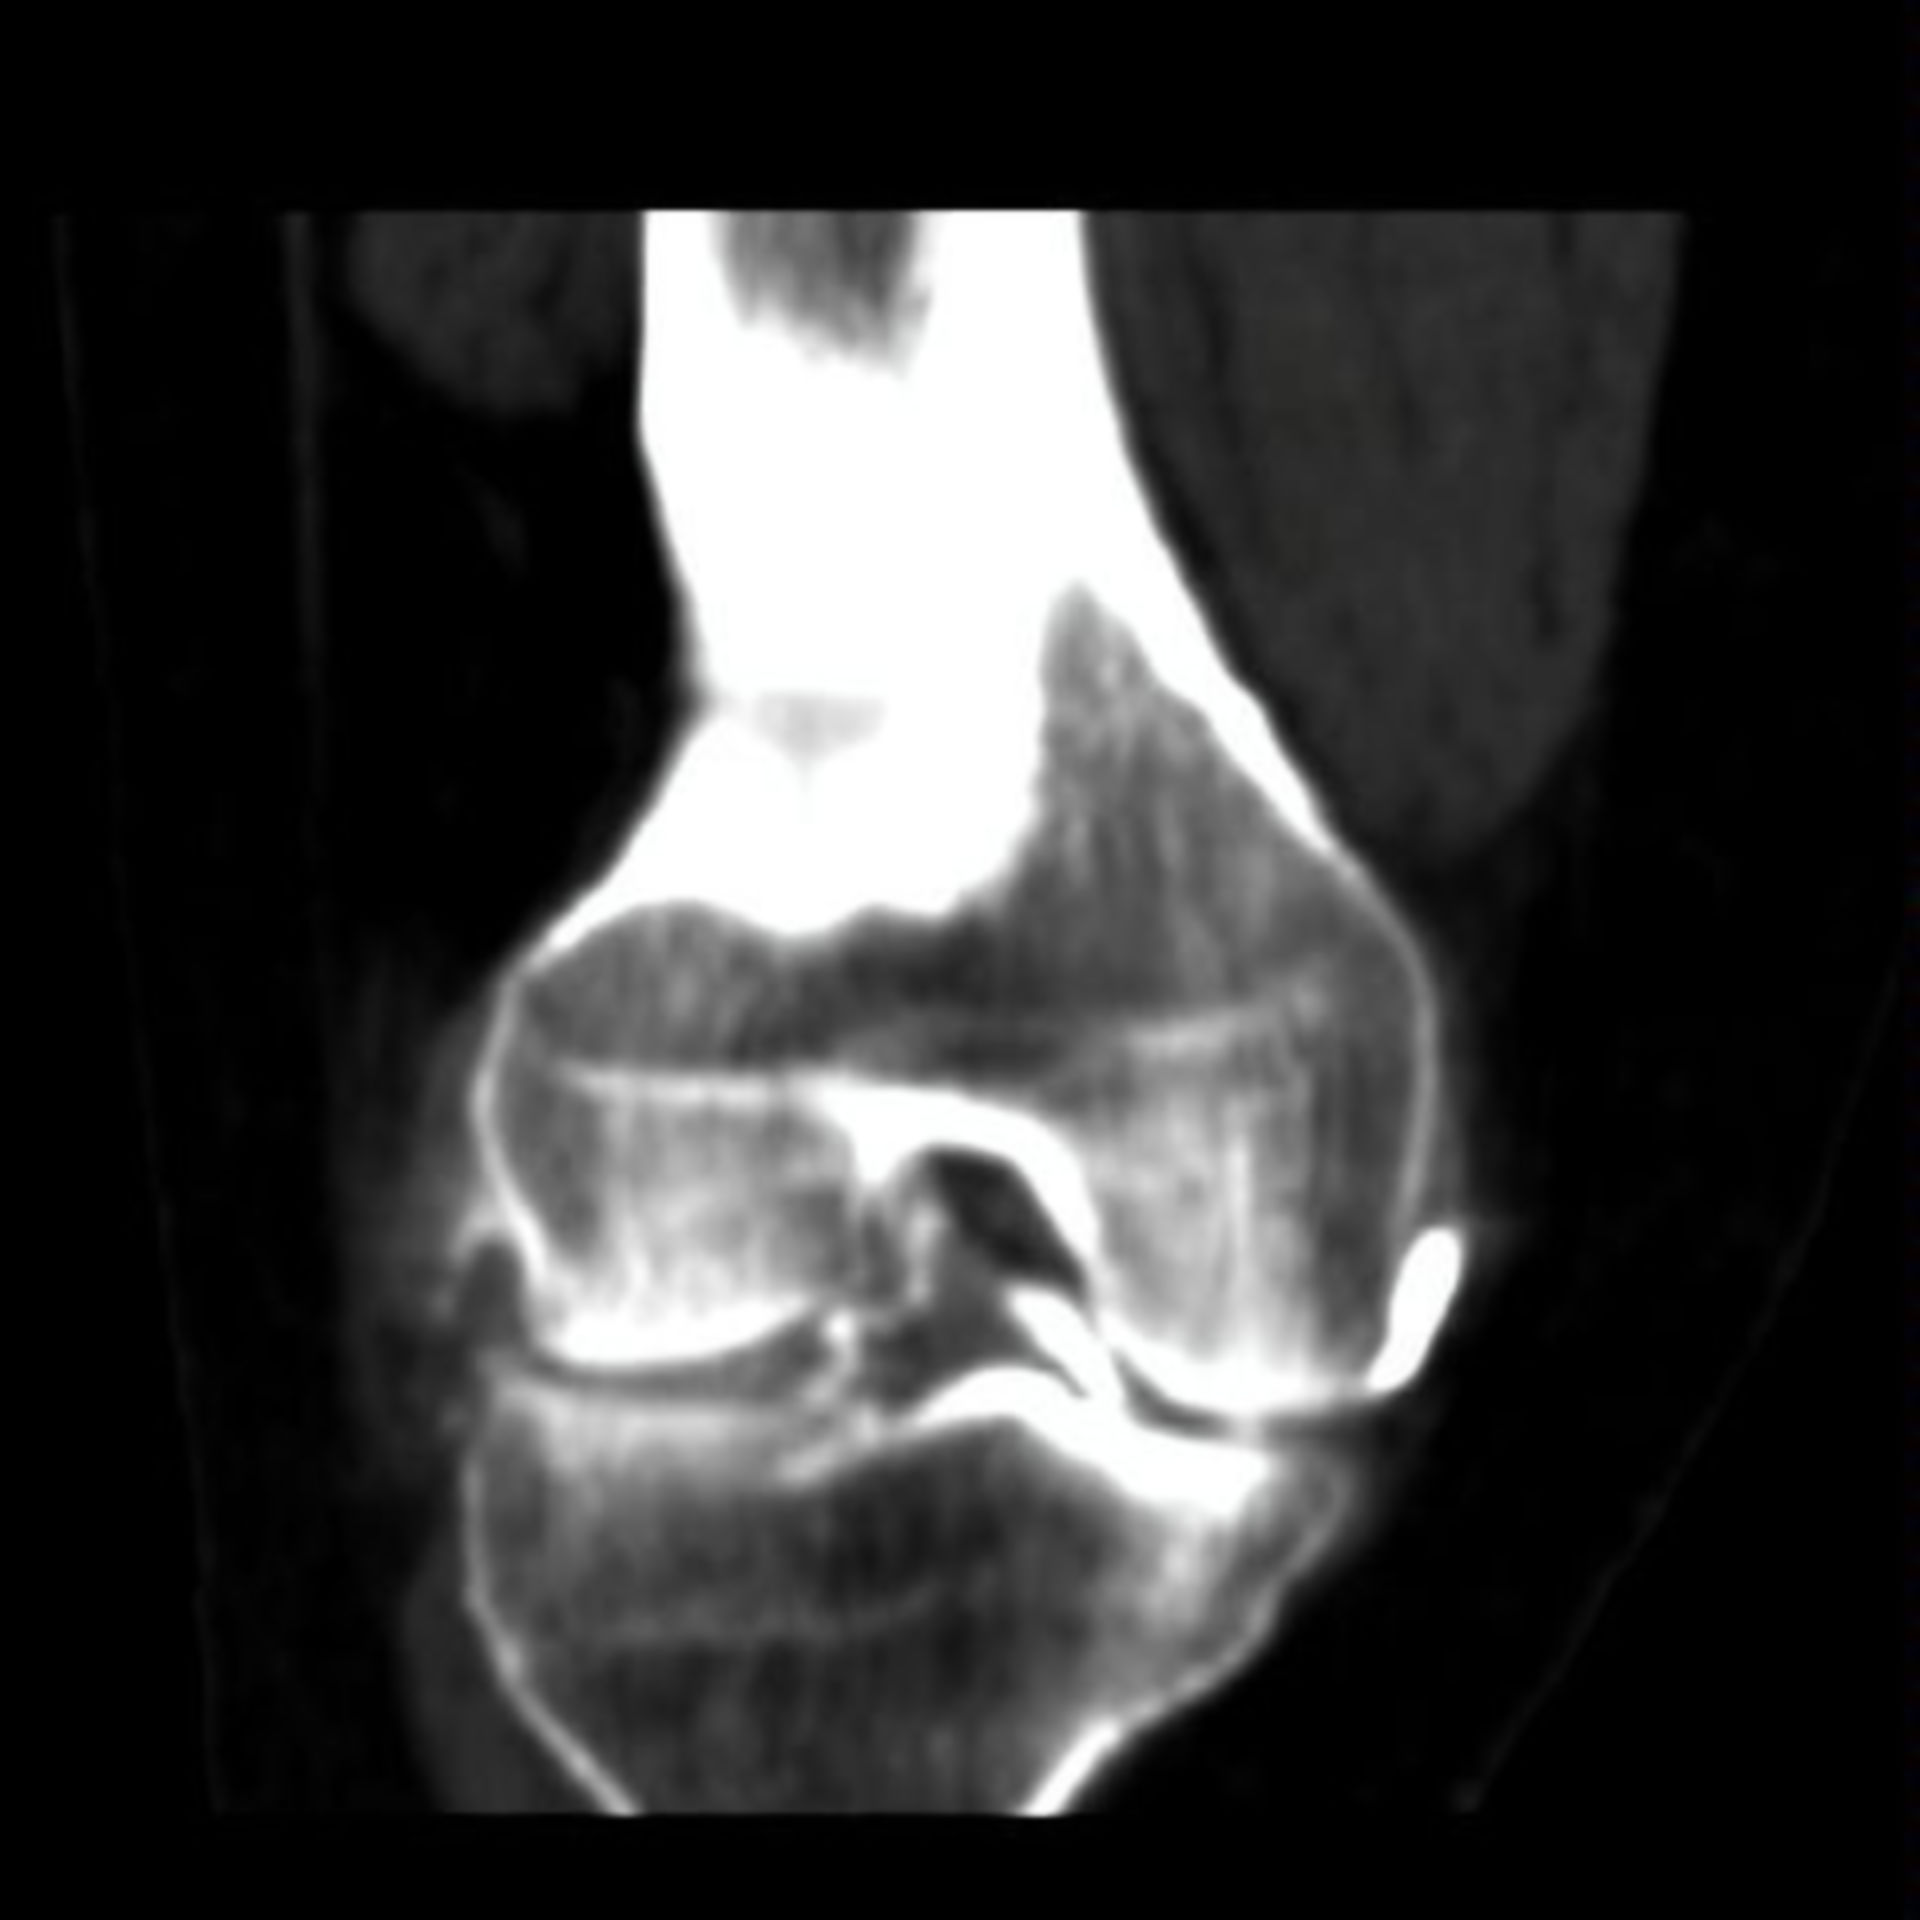 CT of knee joint